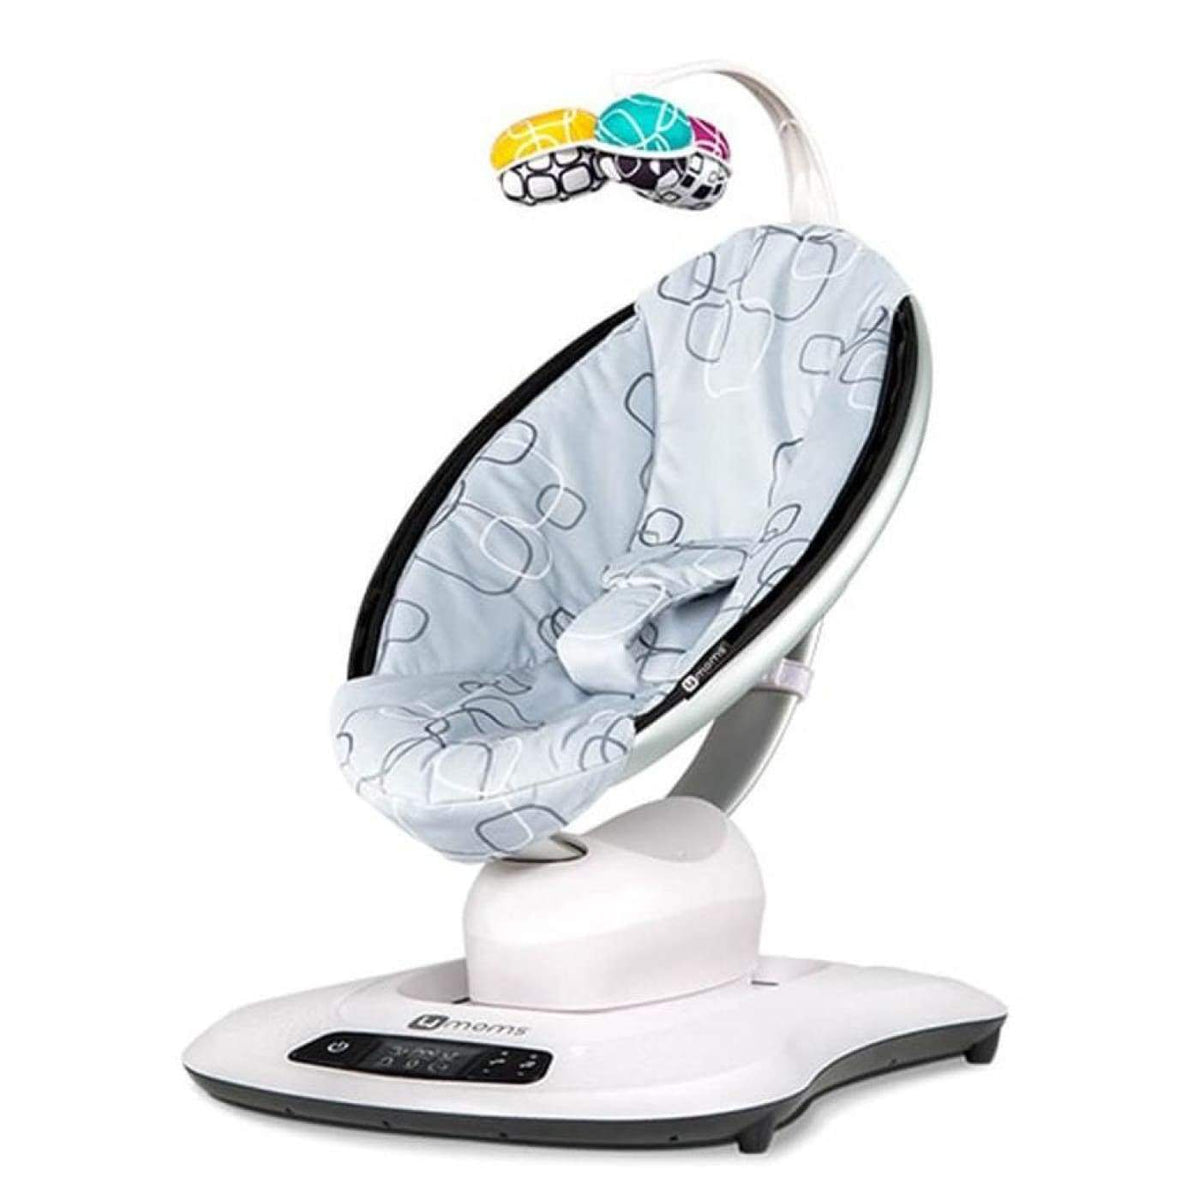 4Moms Mamaroo 4.0 - Silver Plush - TOYS & PLAY - SWINGS